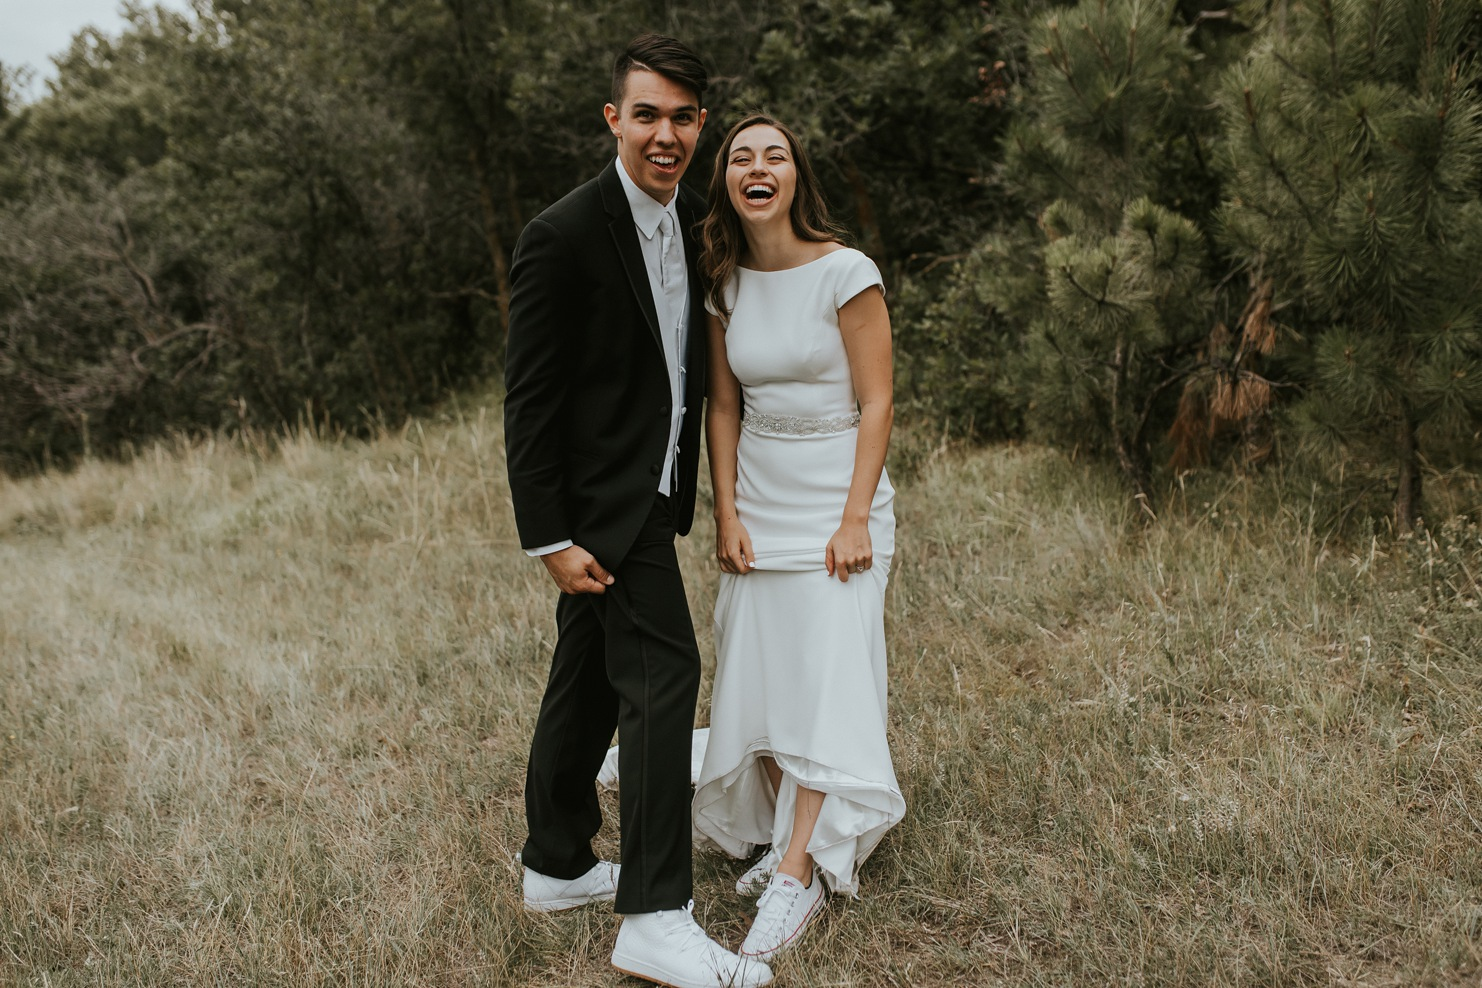 denver-wedding-photographer82.jpg